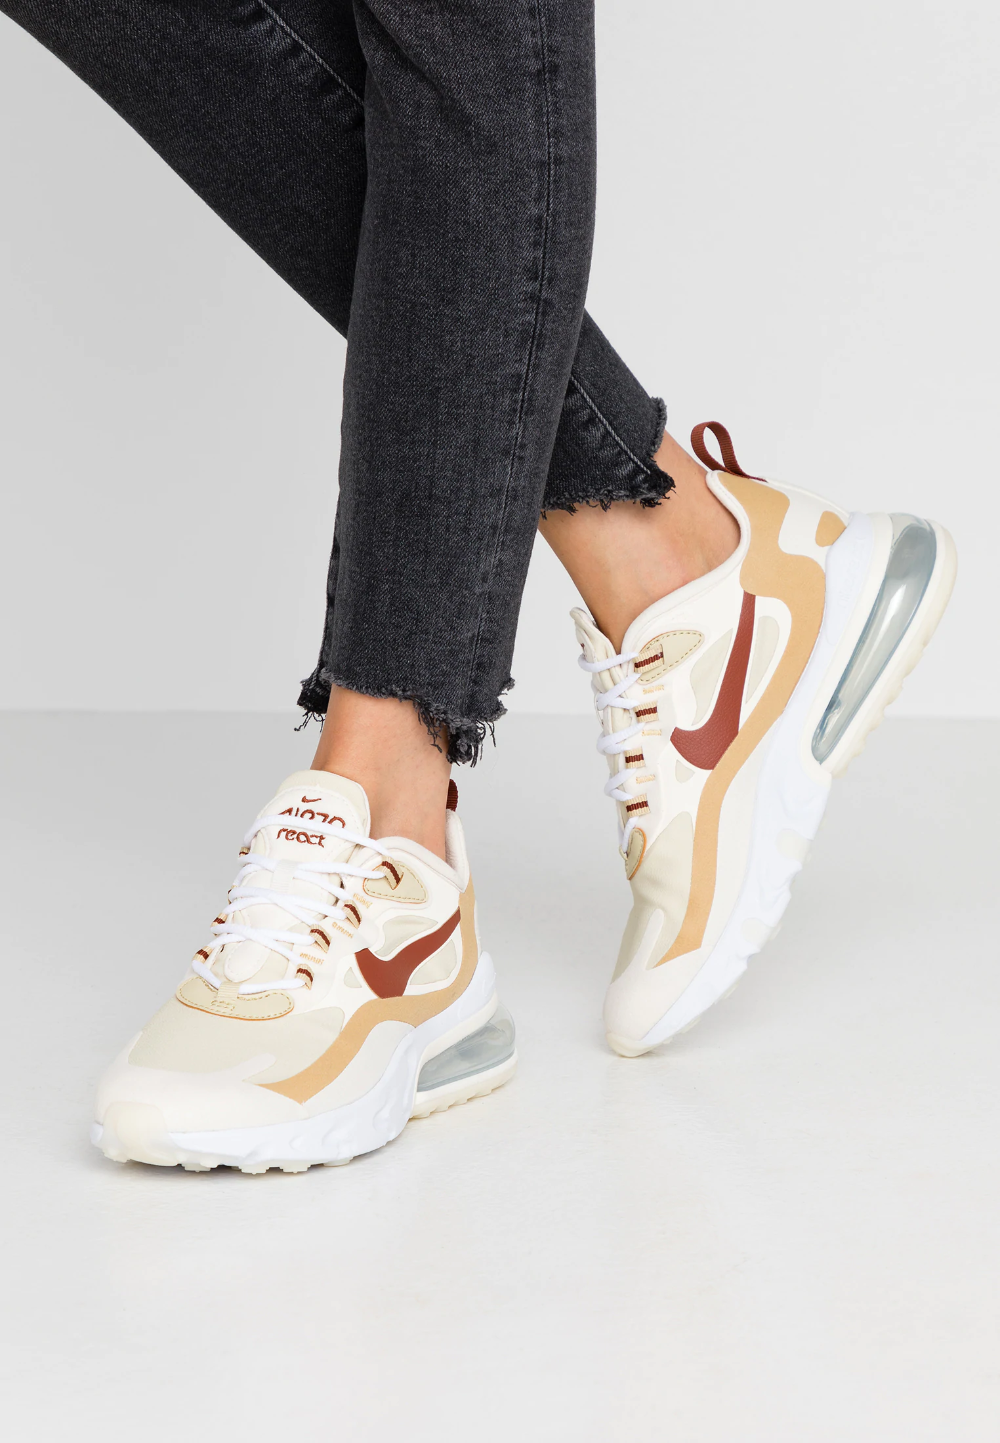 Womens Nike Air Max 270 Reacts Team Gold in 2020 | Nike